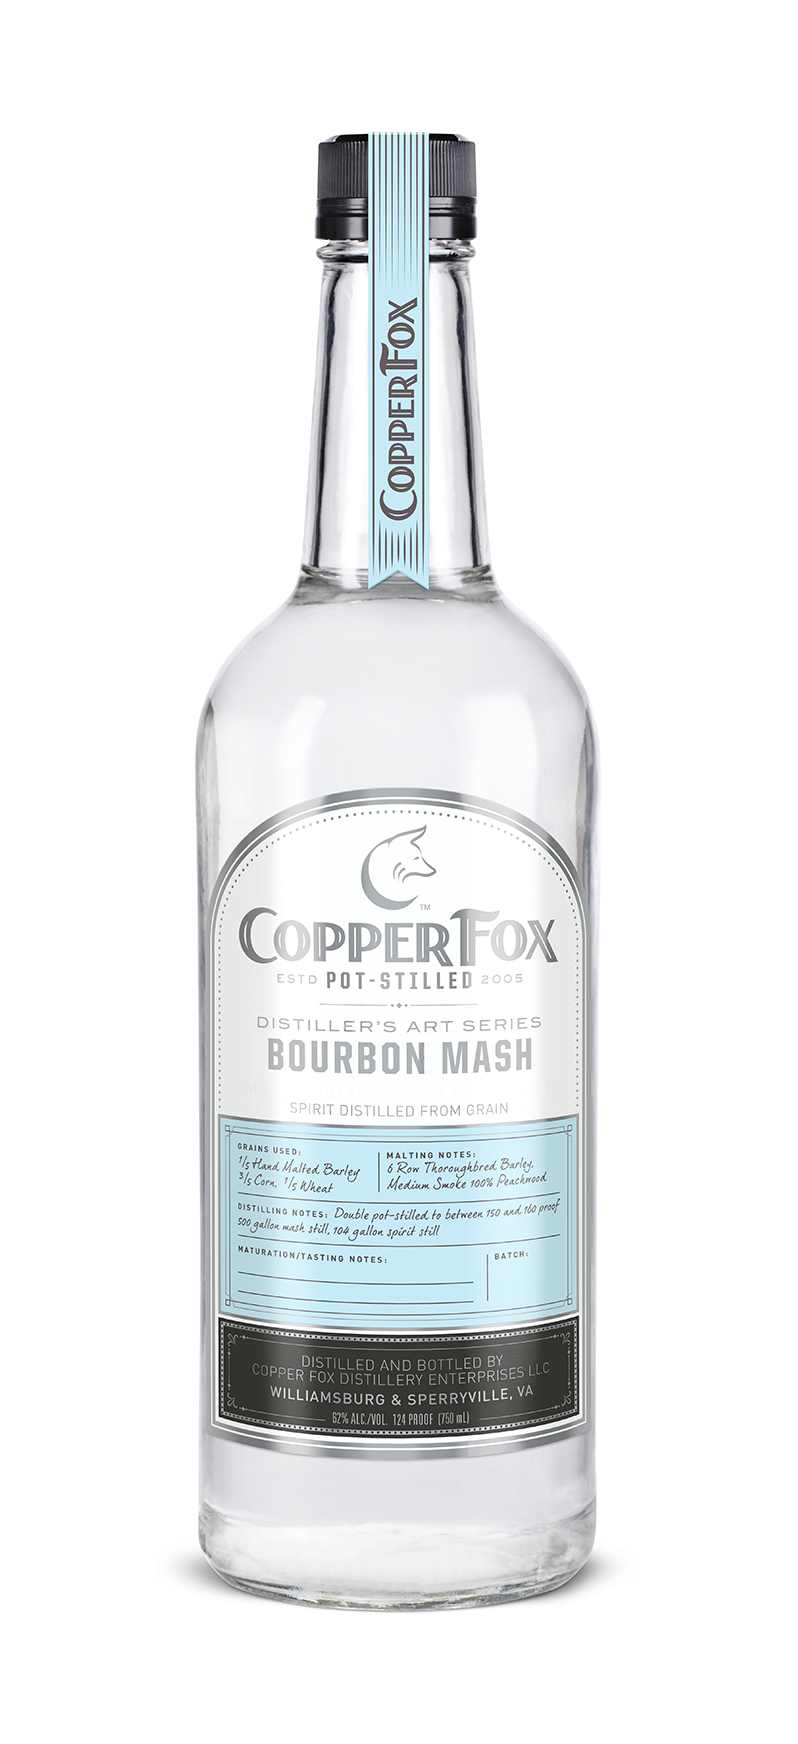 "COPPER FOX BOURBON MASH - The third in our innovative ""Distiller's Art Series,"" this clear spirit is is bottled at barrel strength prior to aging and is hand crafted from 60% Virginia corn, 20% Virginia wheat and 20% Virginiabarley, and the 20% barley in the mash bill is uniquely smoked with peachwood.Unlike neutral grain spirits, which are distilled at 190 proof and above, our spirits are hand crafted and carefully distilled at just under 160 proof, utilizing a process which allows the complete essence and flavor of the barley grain to come through.Enjoy this Bourbon Mash as a foundation for creating marvelous cocktails; substituting it for many other spirits in your favorite recipes. In addition, we invite you to replicate the aging process at home in our new lightly charred American white oak barrels. The cask strength (124 proof) spirit is the best strength to optimize the reaction of spirit and wood.Delicate peach-wood smoke gives way to a buttered corn nose. Hints of pepper and cinnamon set up tongue for a silky sweet finish. Floral body leaves your mouth salivating for more.‹ PreviousBack to GalleryNext ›"